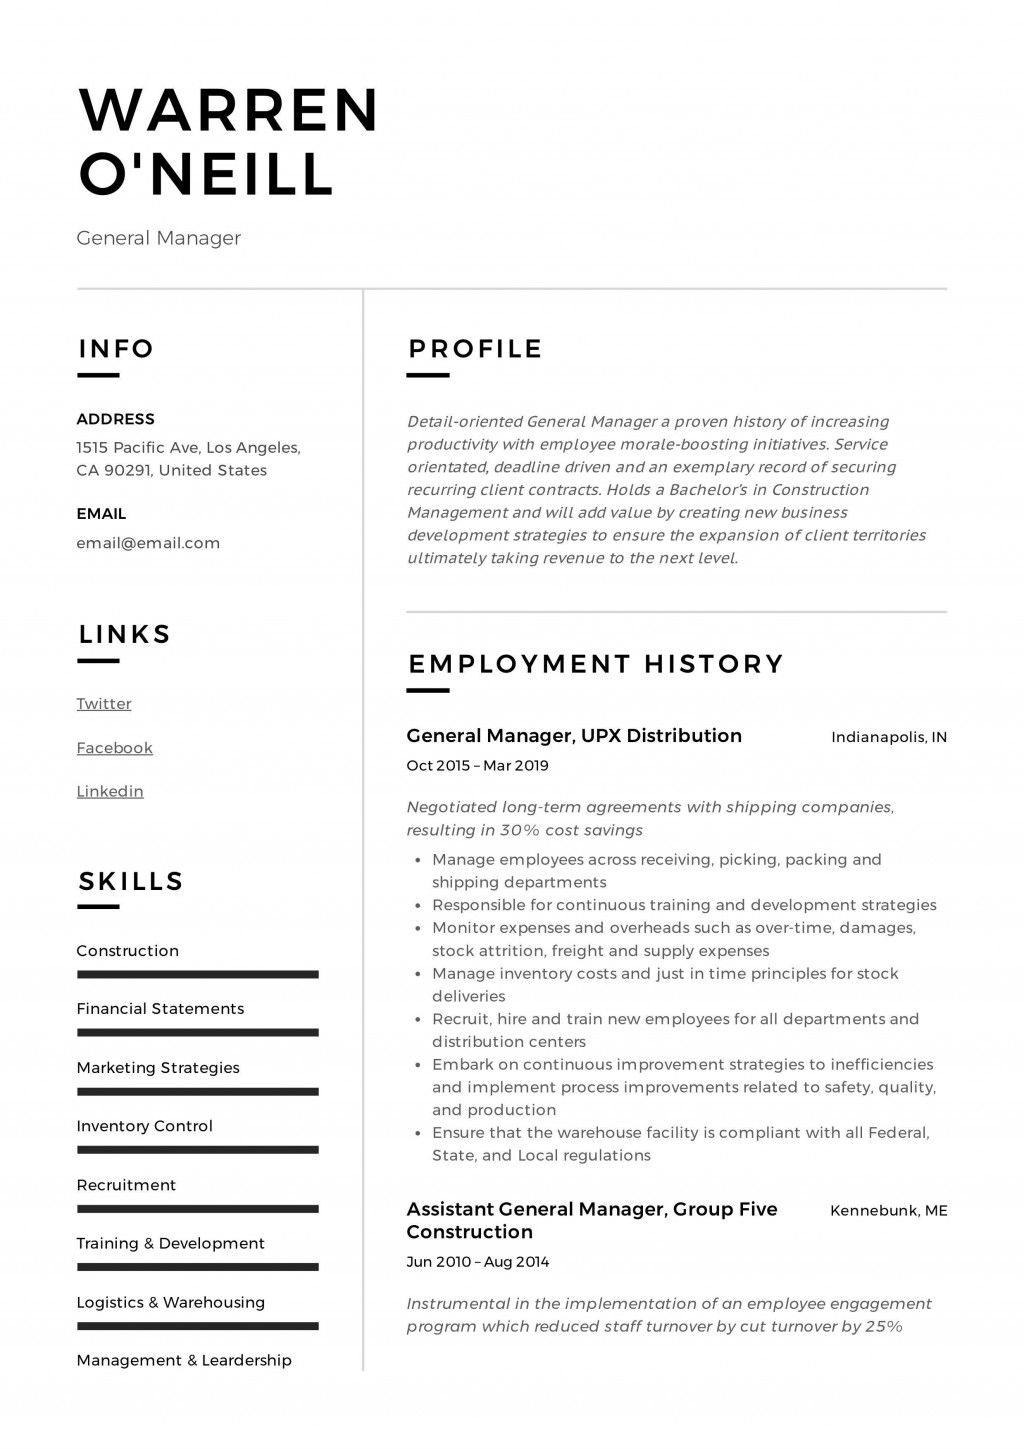 010 Remarkable Resume Example Pdf Free Download High Definition Large